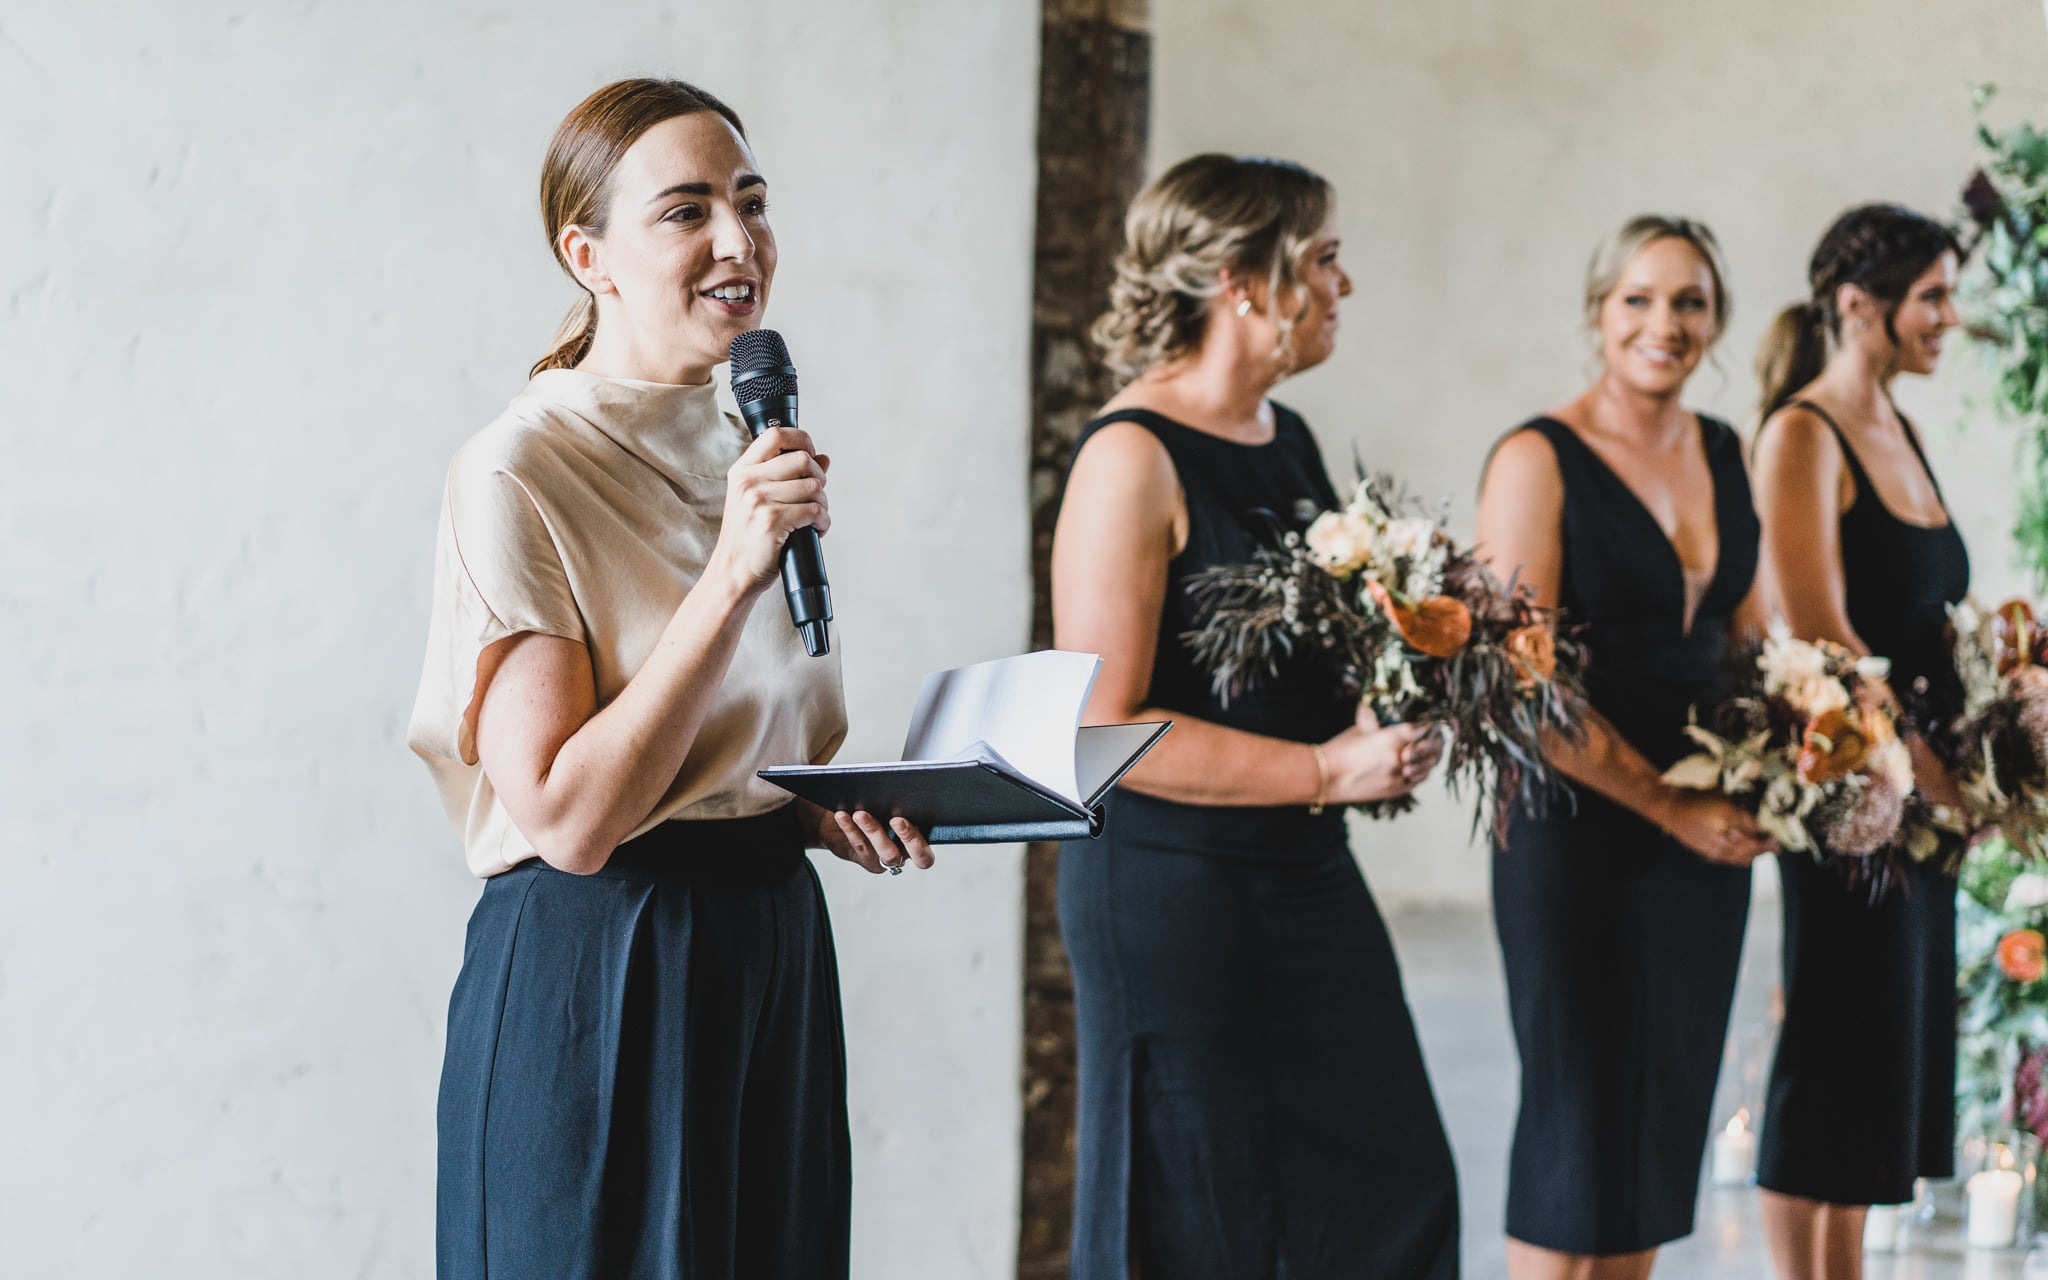 The celebrant, Natalie Drum, talking to the wedding guests